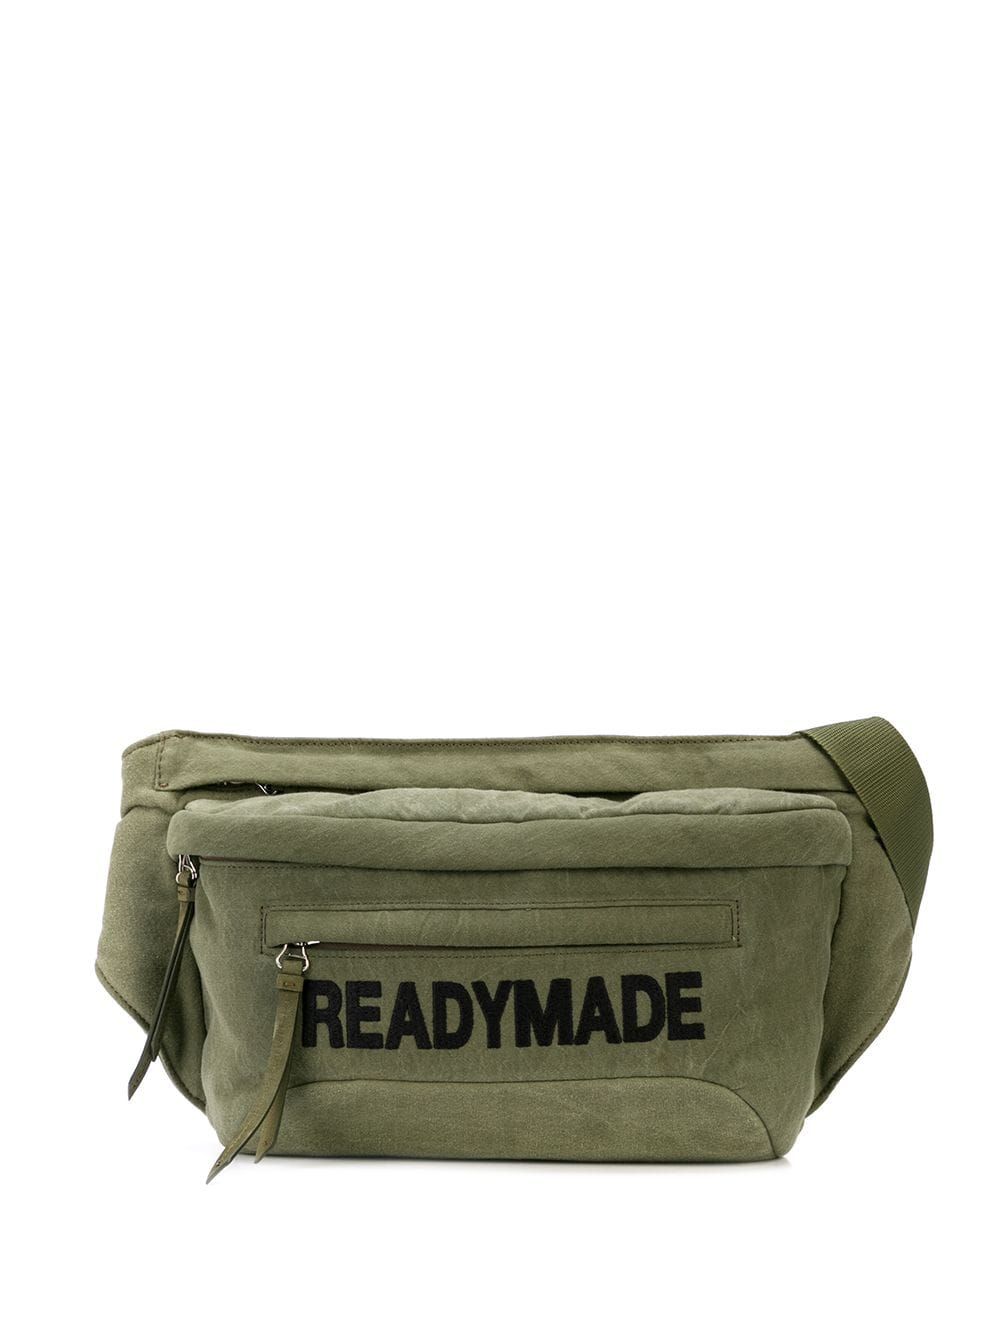 READYMADE BELT BAG